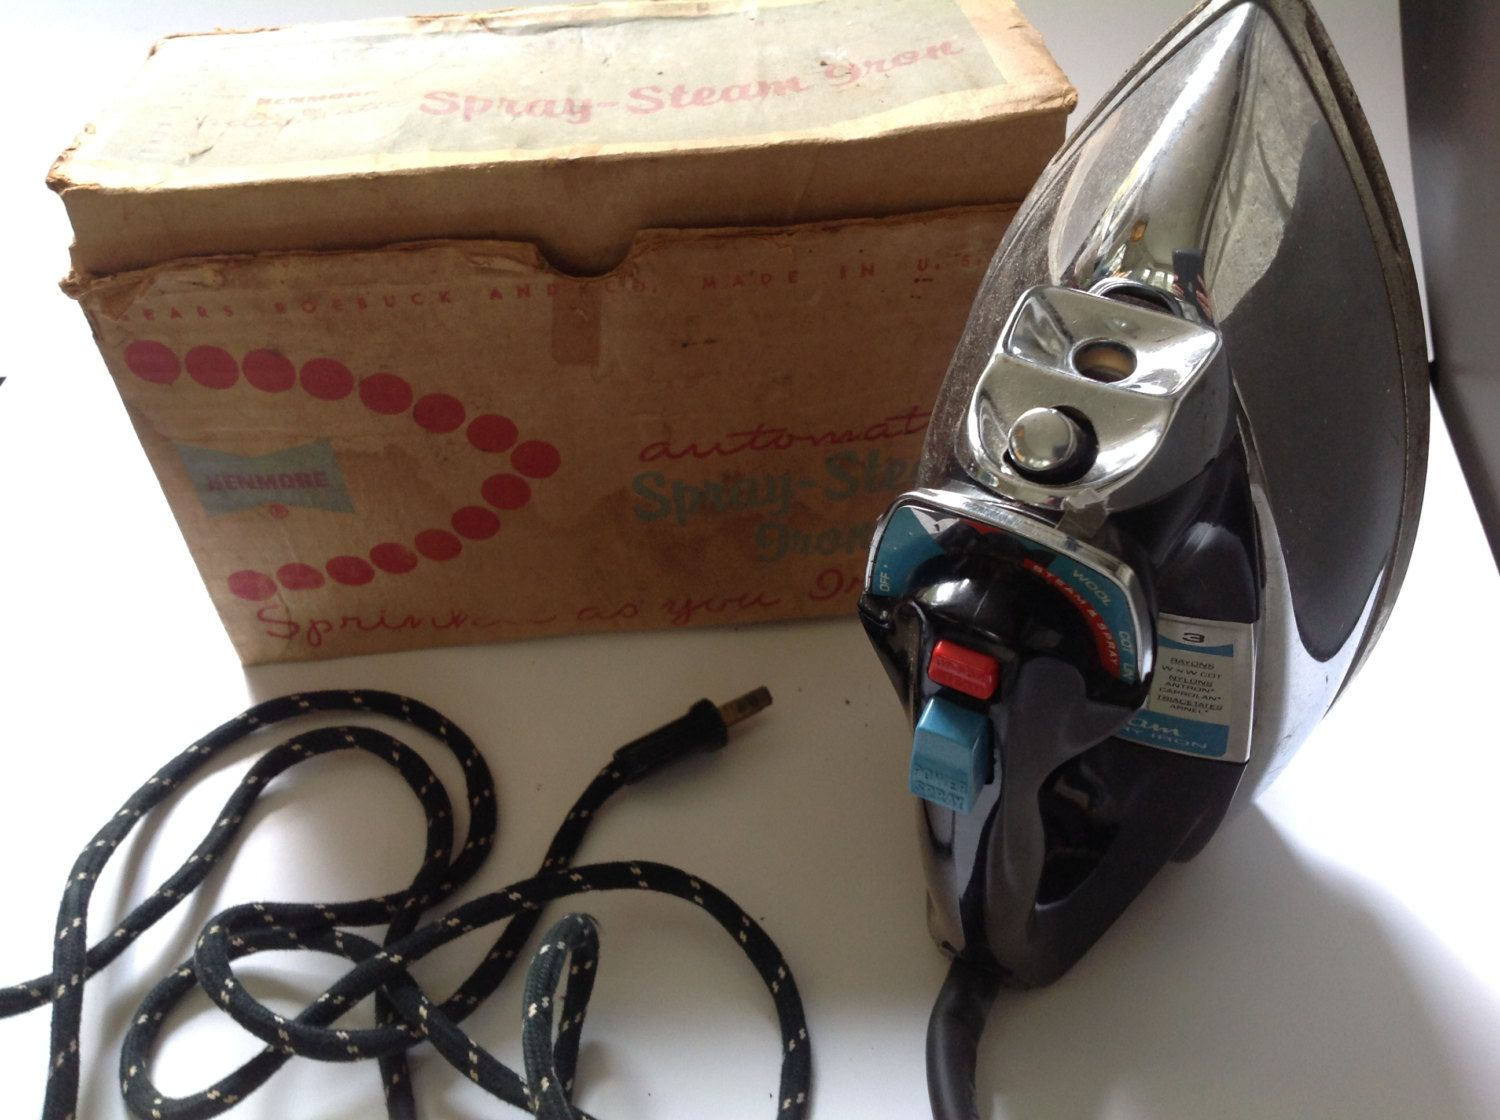 kenmore iron. vintage 50s sears roebuck kenmore automatic spray steam iron in original box by hannahandhersisters on etsy